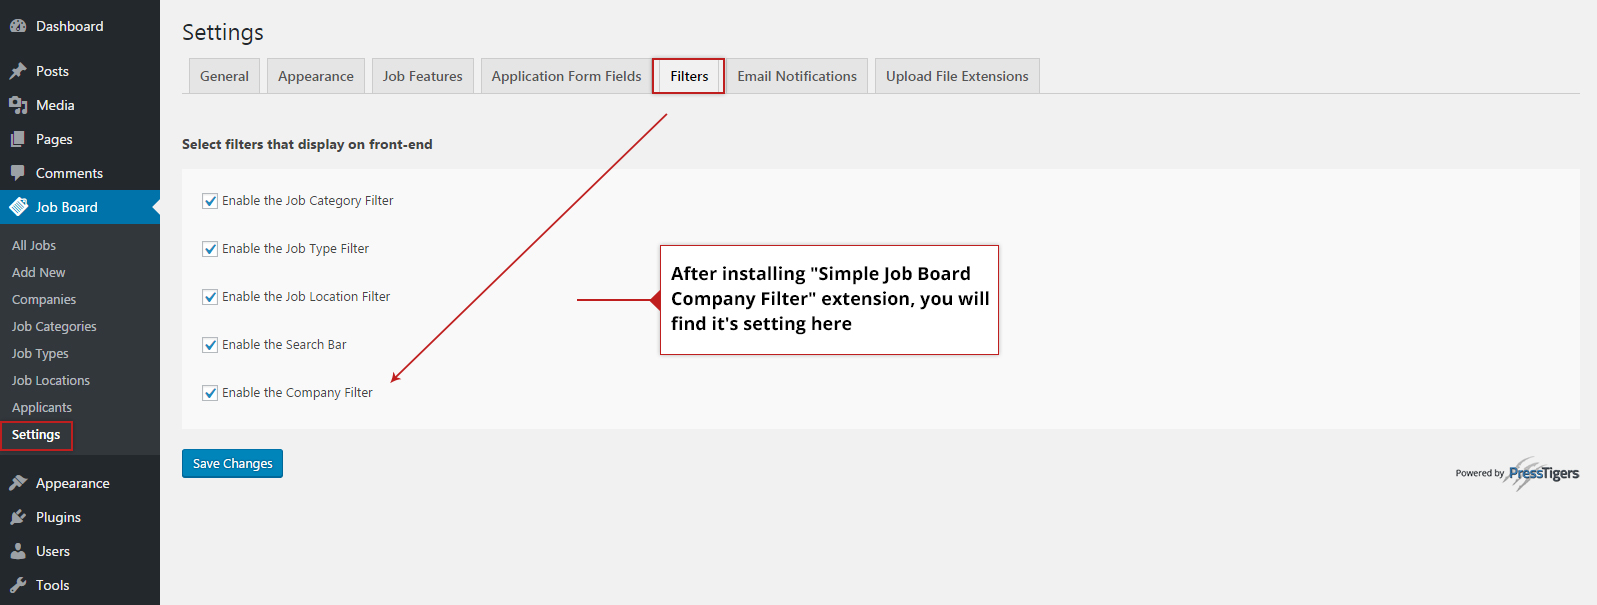 Company filter can be enabled and disabled for front end view